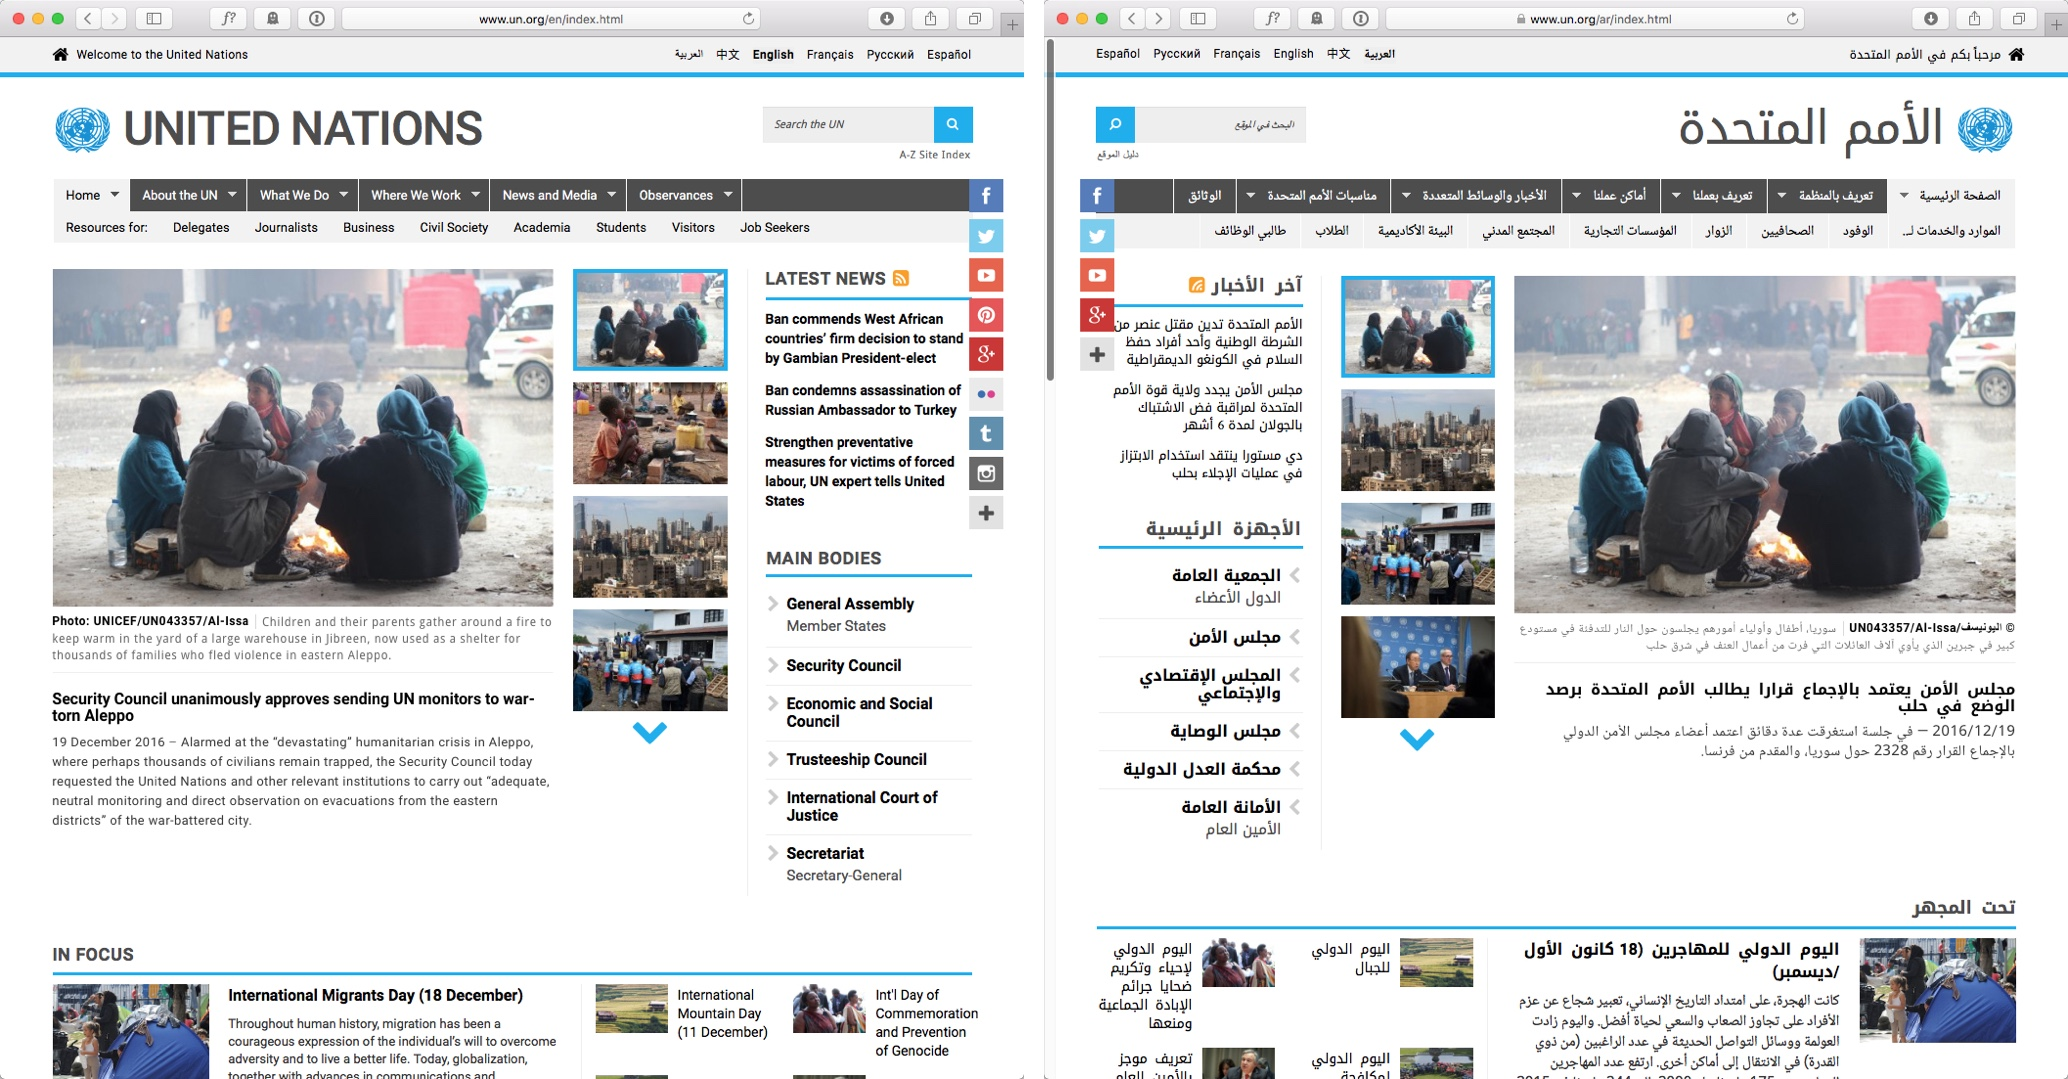 Two side by side screenshots of the United Nations' site, comparing English and Arabic layouts.